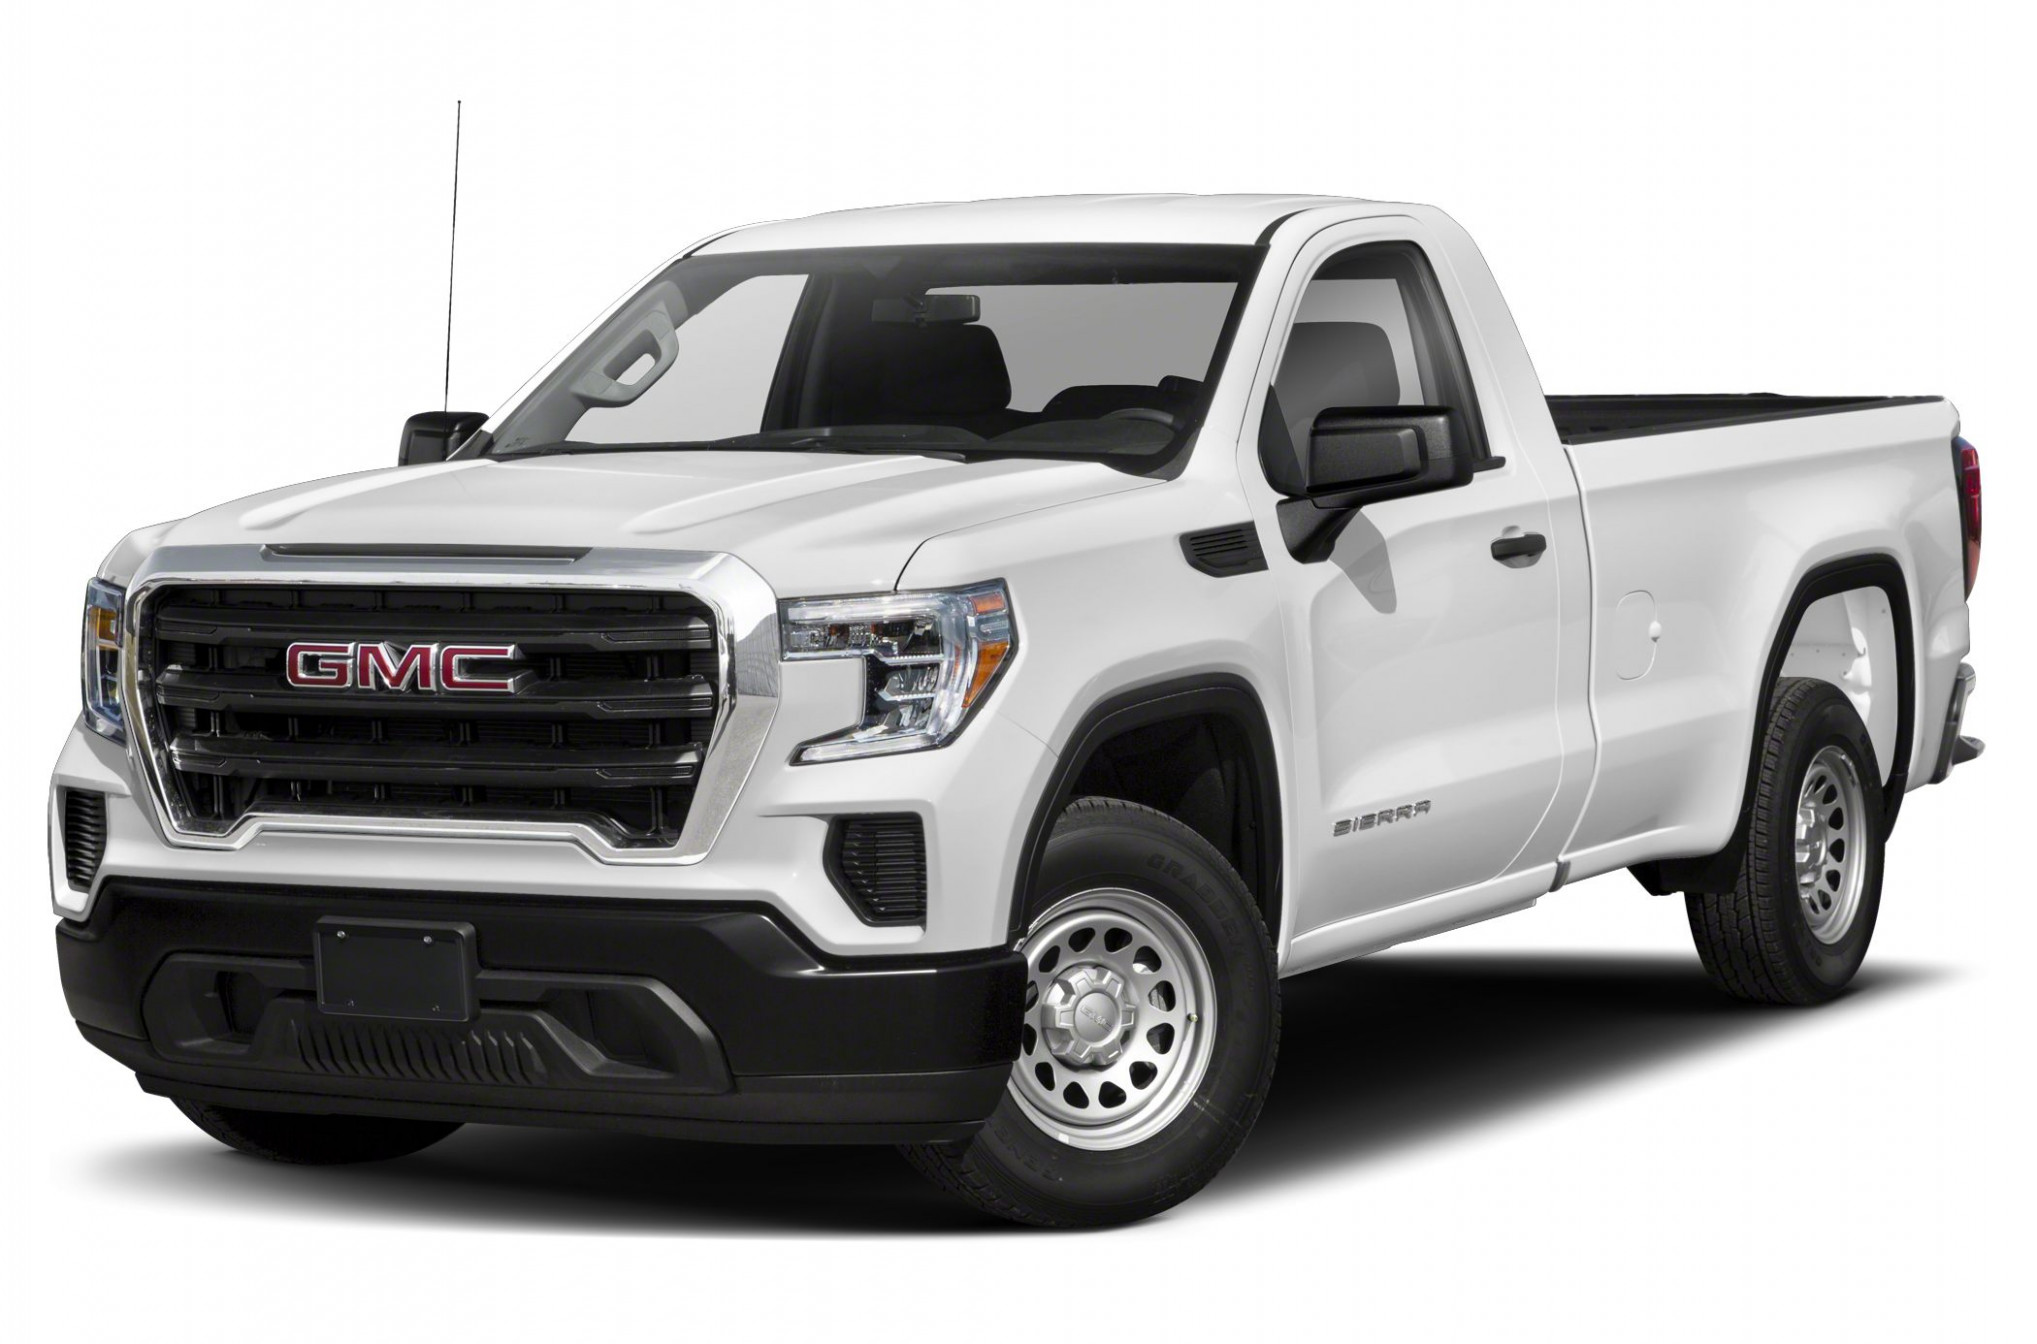 8 GMC Sierra 8 Pictures - 2020 gmc pickup